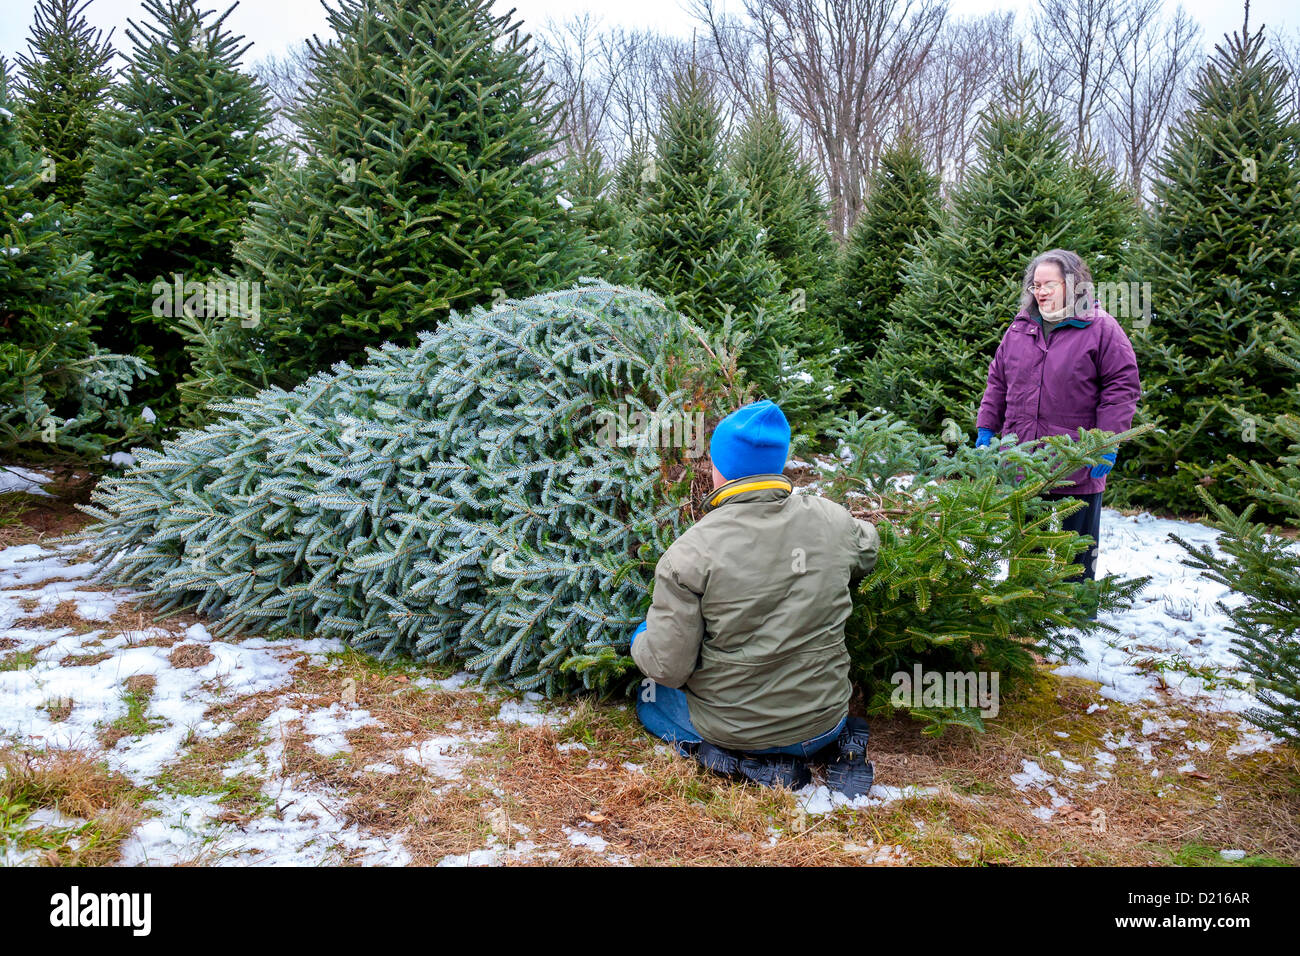 A Man And Woman Cut Down A Christmas Tree On A Christmas Tree Farm  - Christmas Trees To Cut Down